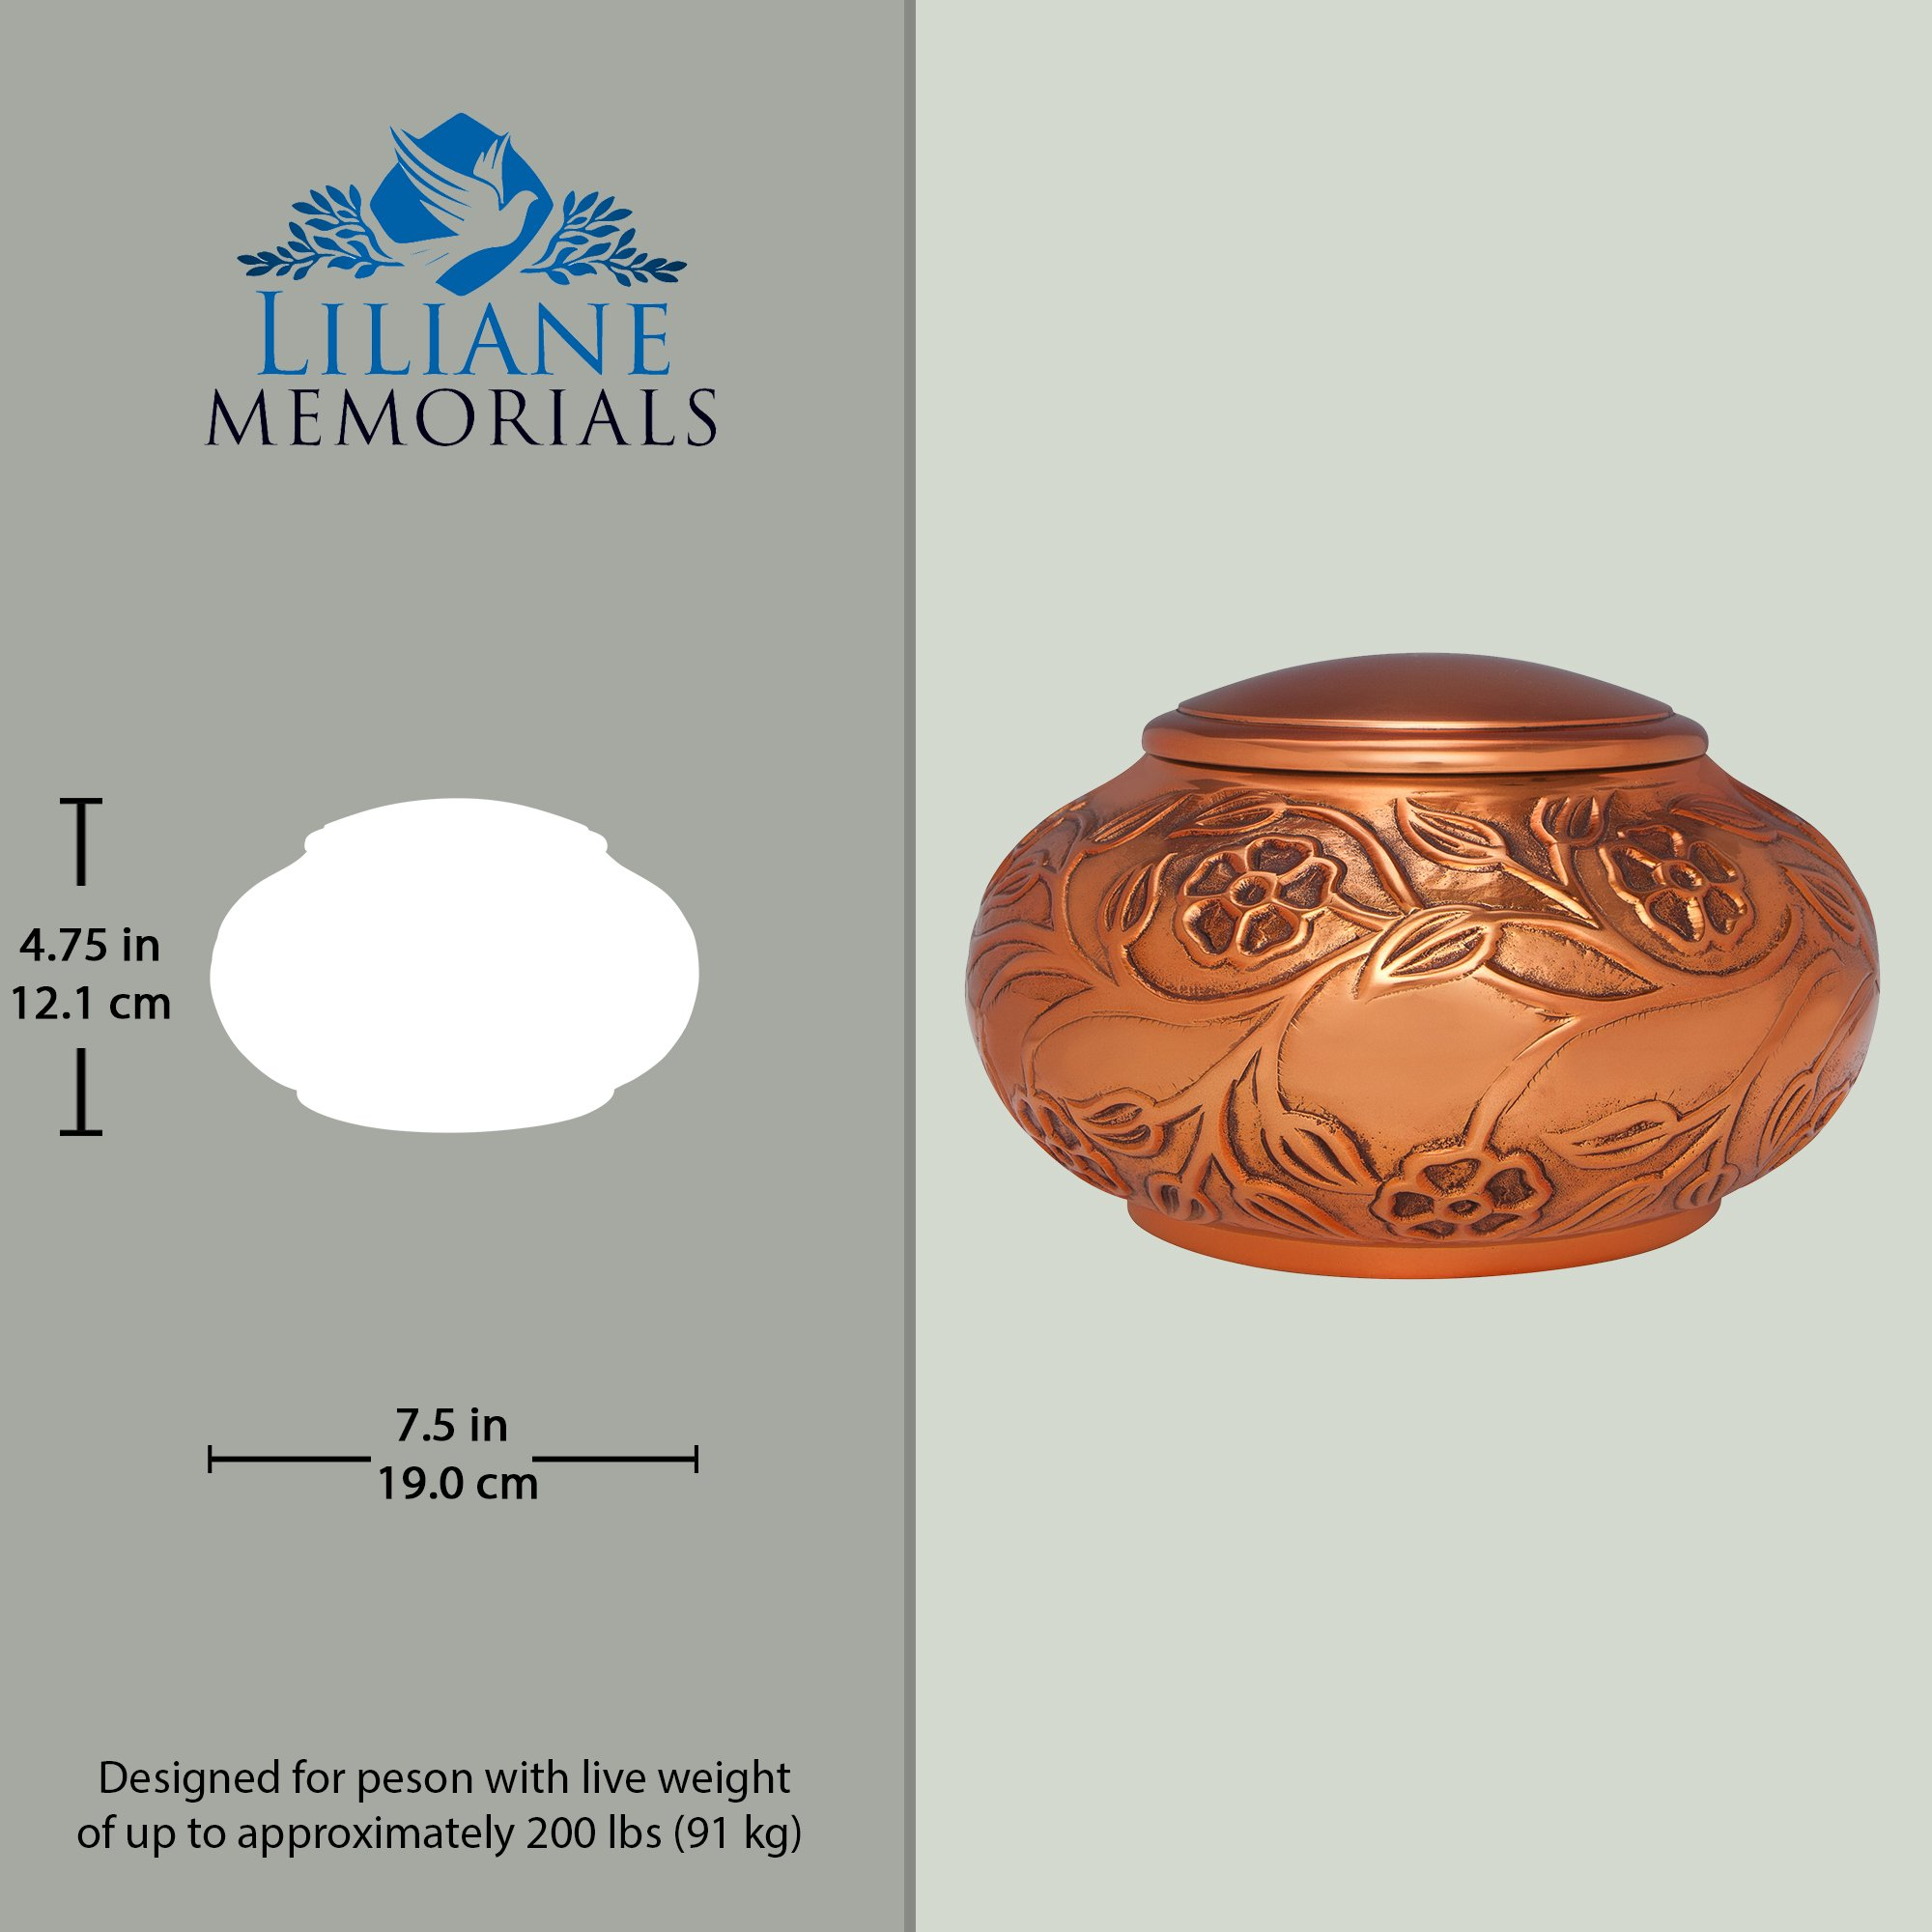 Copper Funeral Urn by Liliane Memorials - Cremation Urn for Human Ashes - Hand Made in Brass - Suitable for Cemetery Burial or Niche - Large Size fits remains of Adults up to 70 lbs by Liliane Memorials (Image #4)